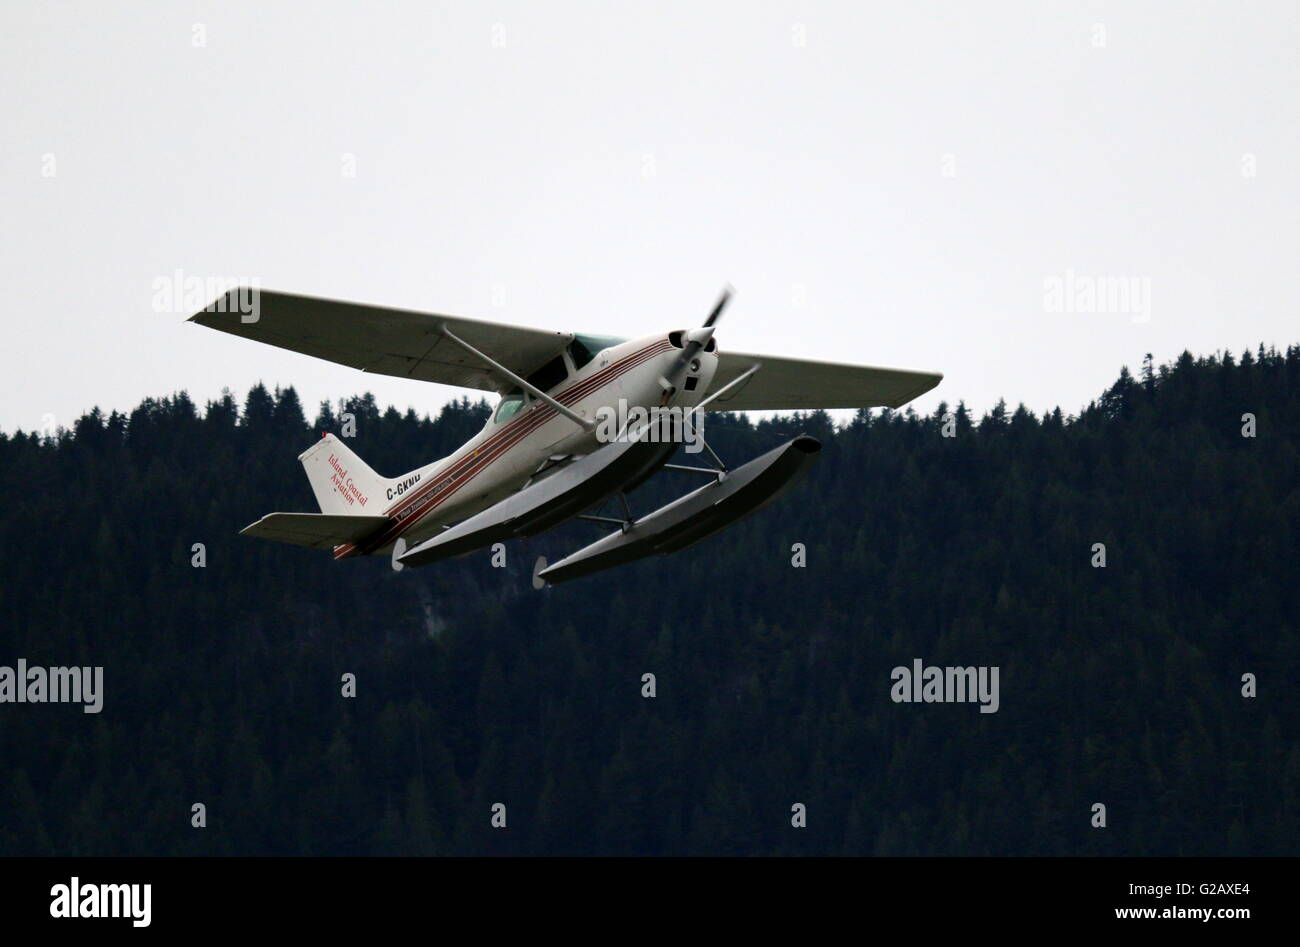 Flying Practice 2 - Cessna Aircraft - Stock Image